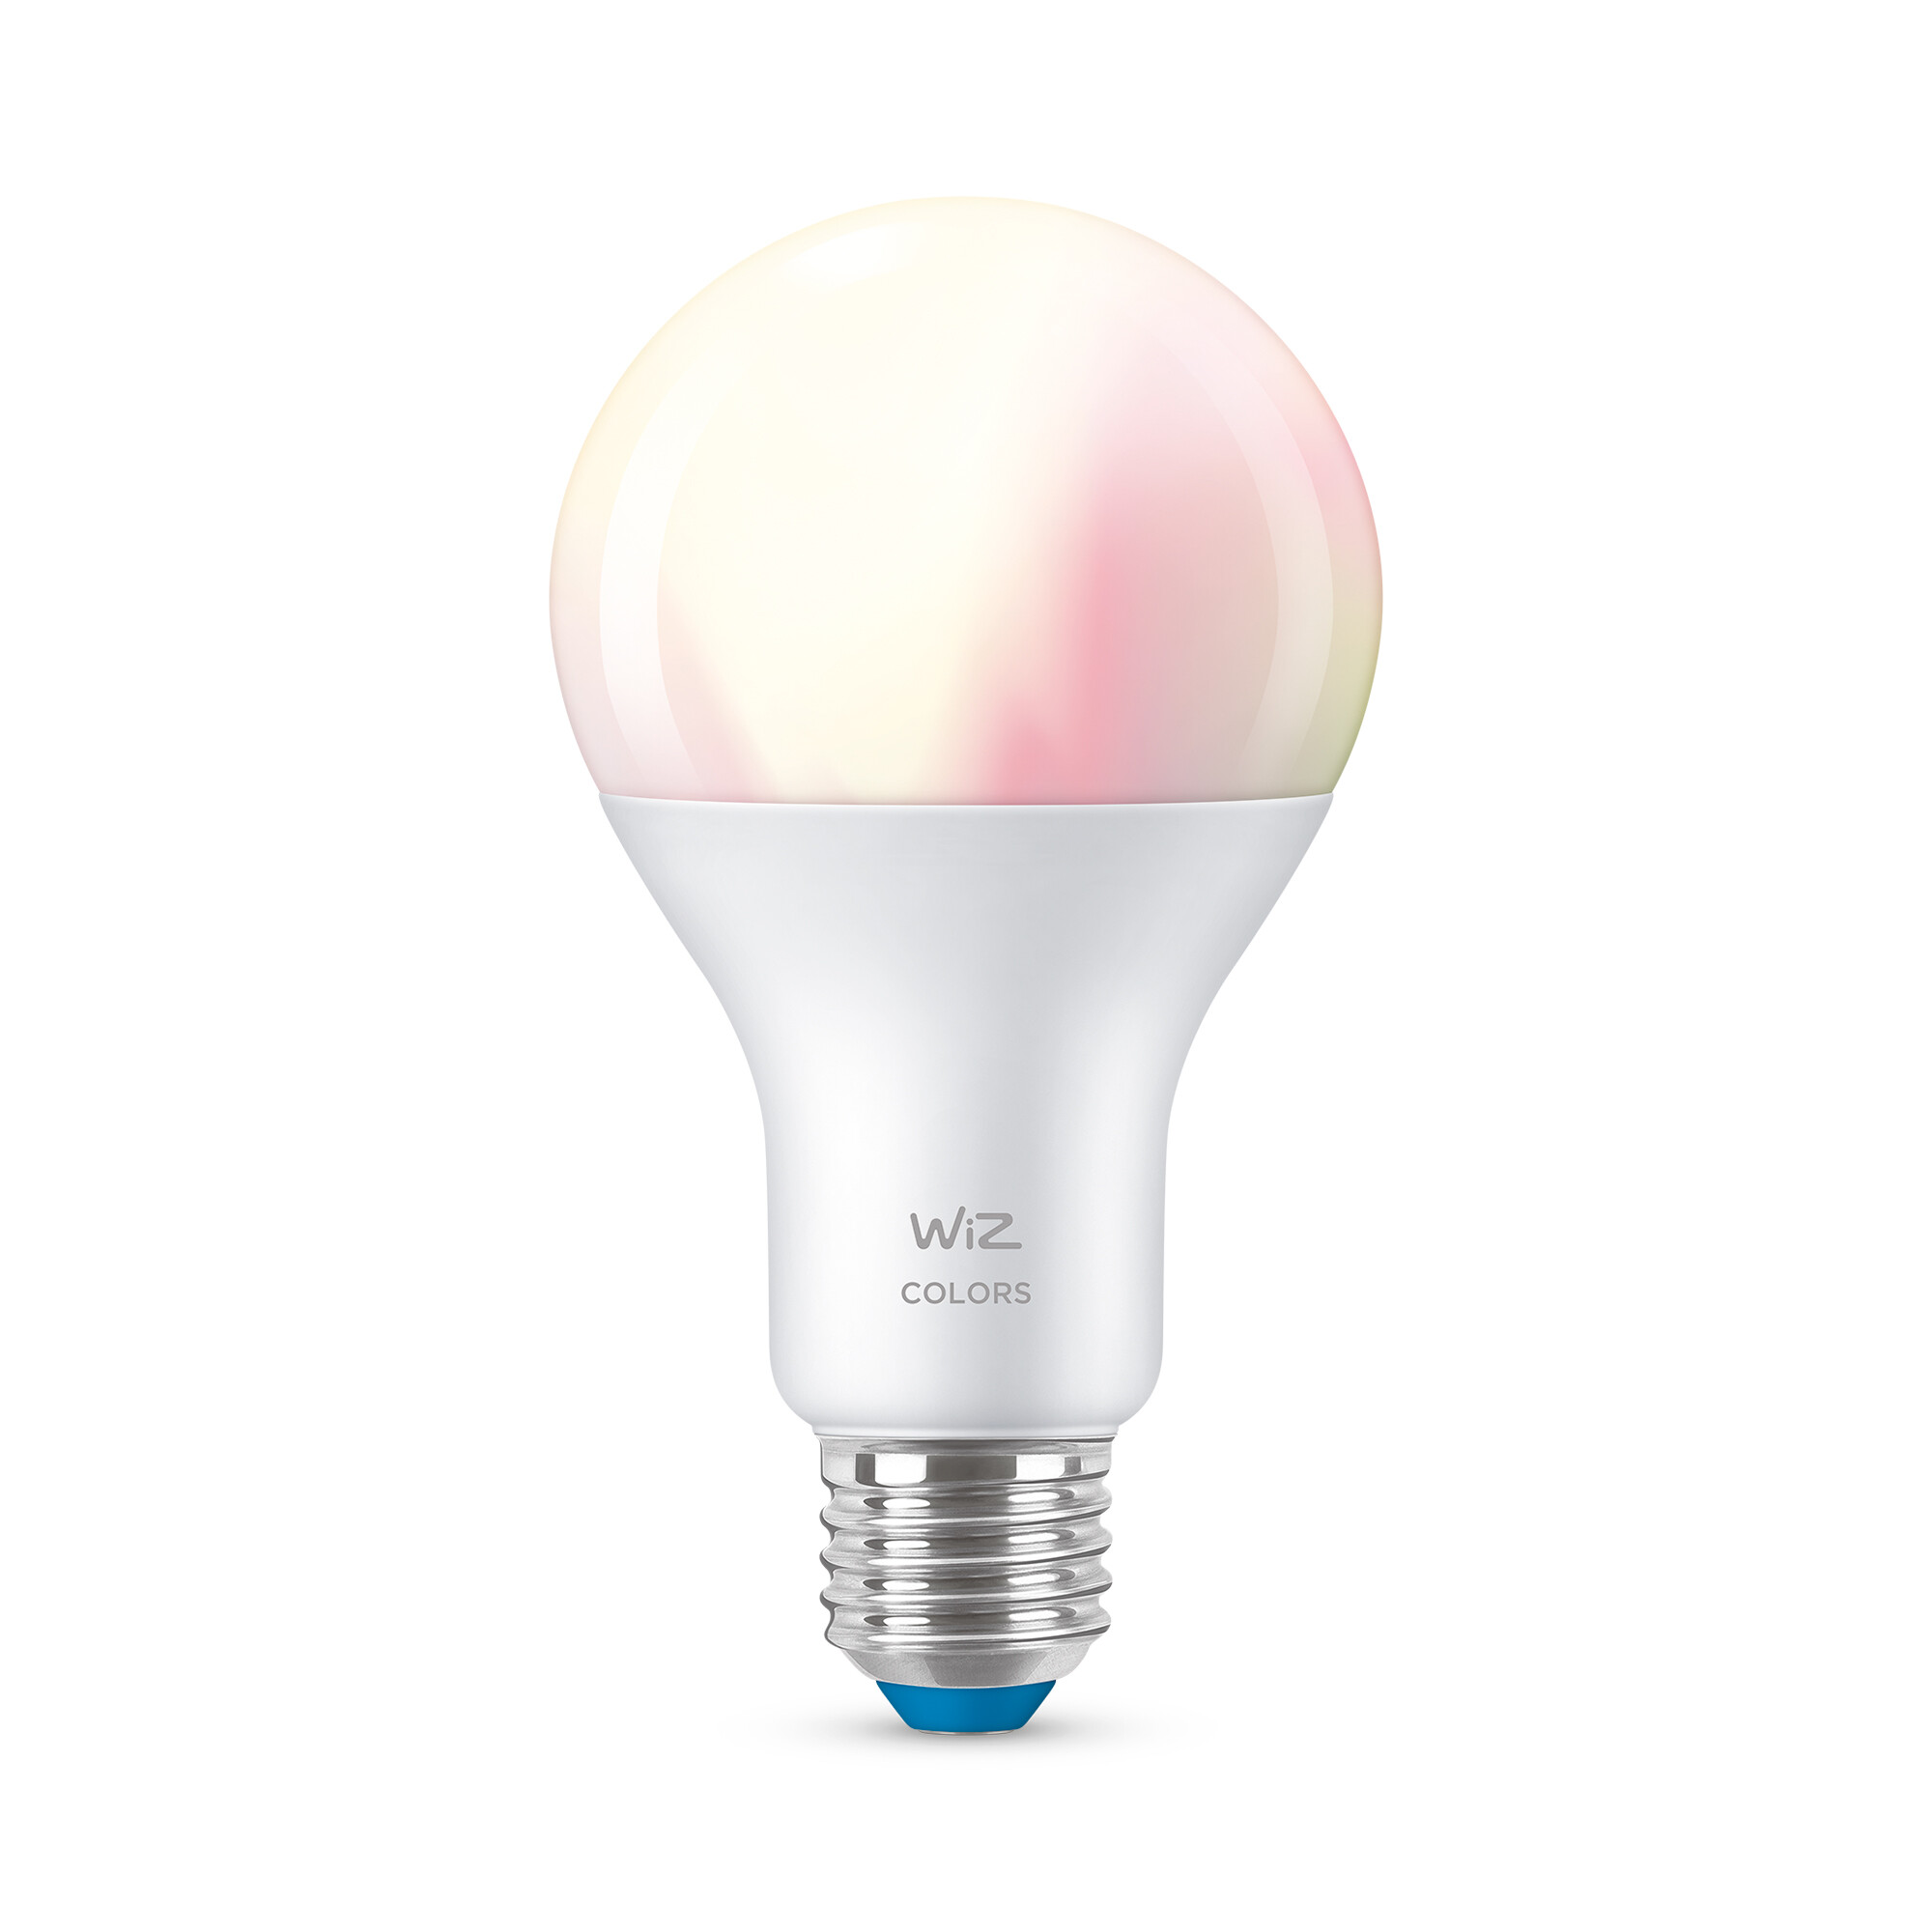 WiZ E27 100W 1521lm 2200K-6500K Lamp Frosted